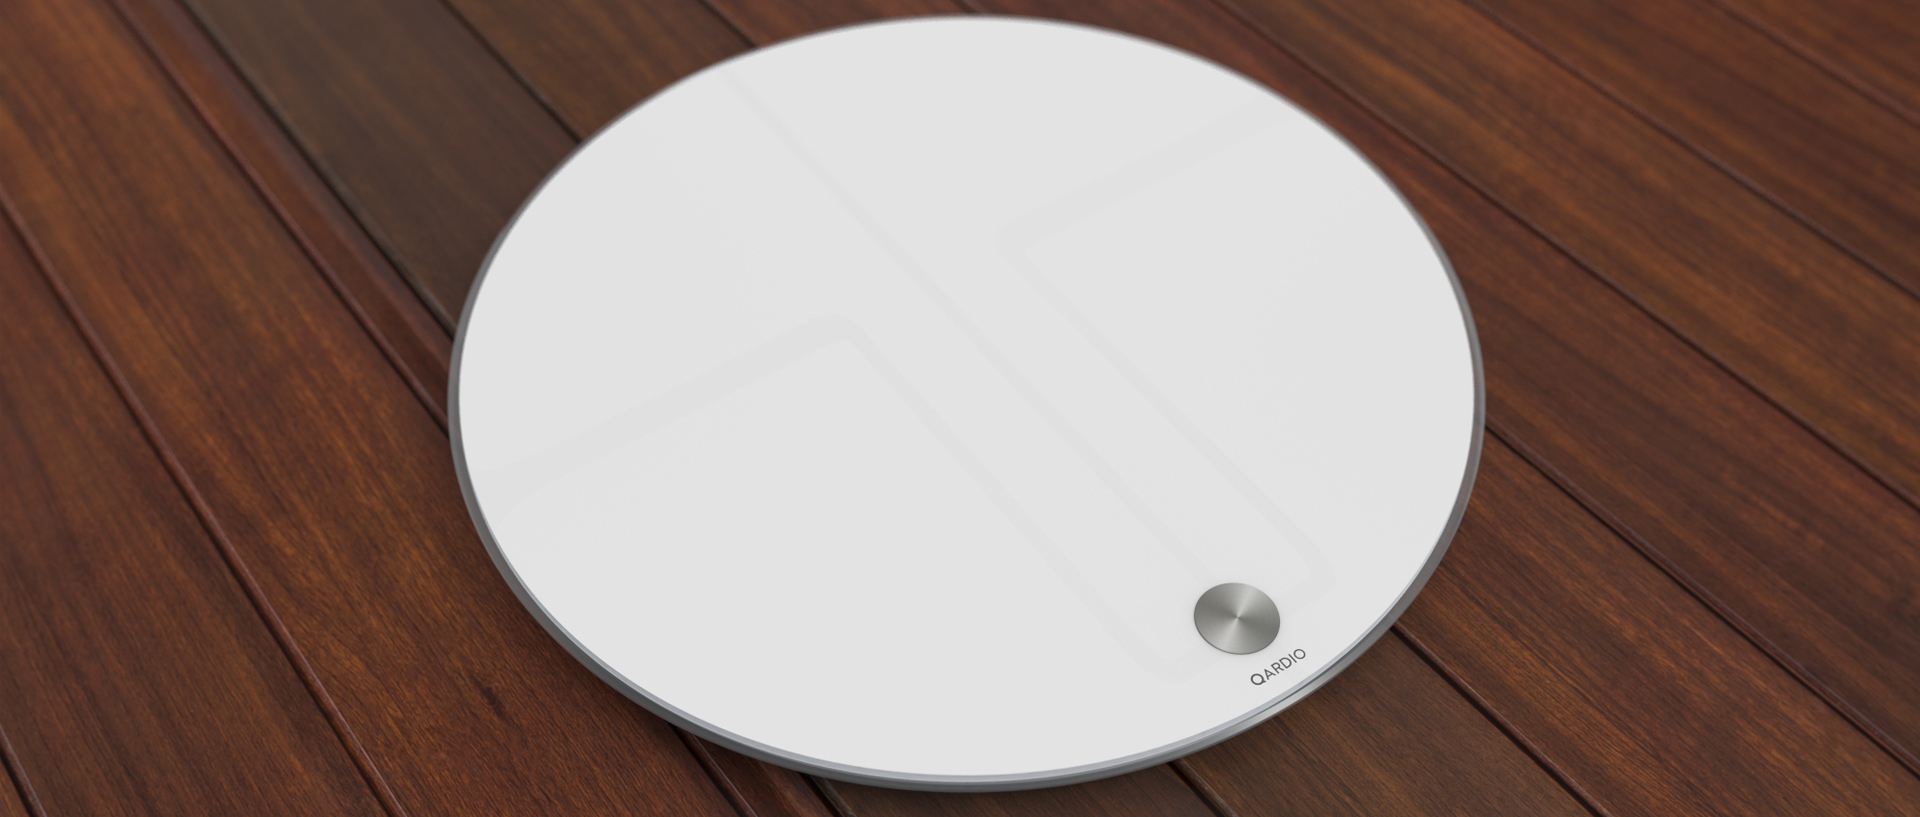 Bathroom scales best rated - Bathroom Scales Best Rated 30